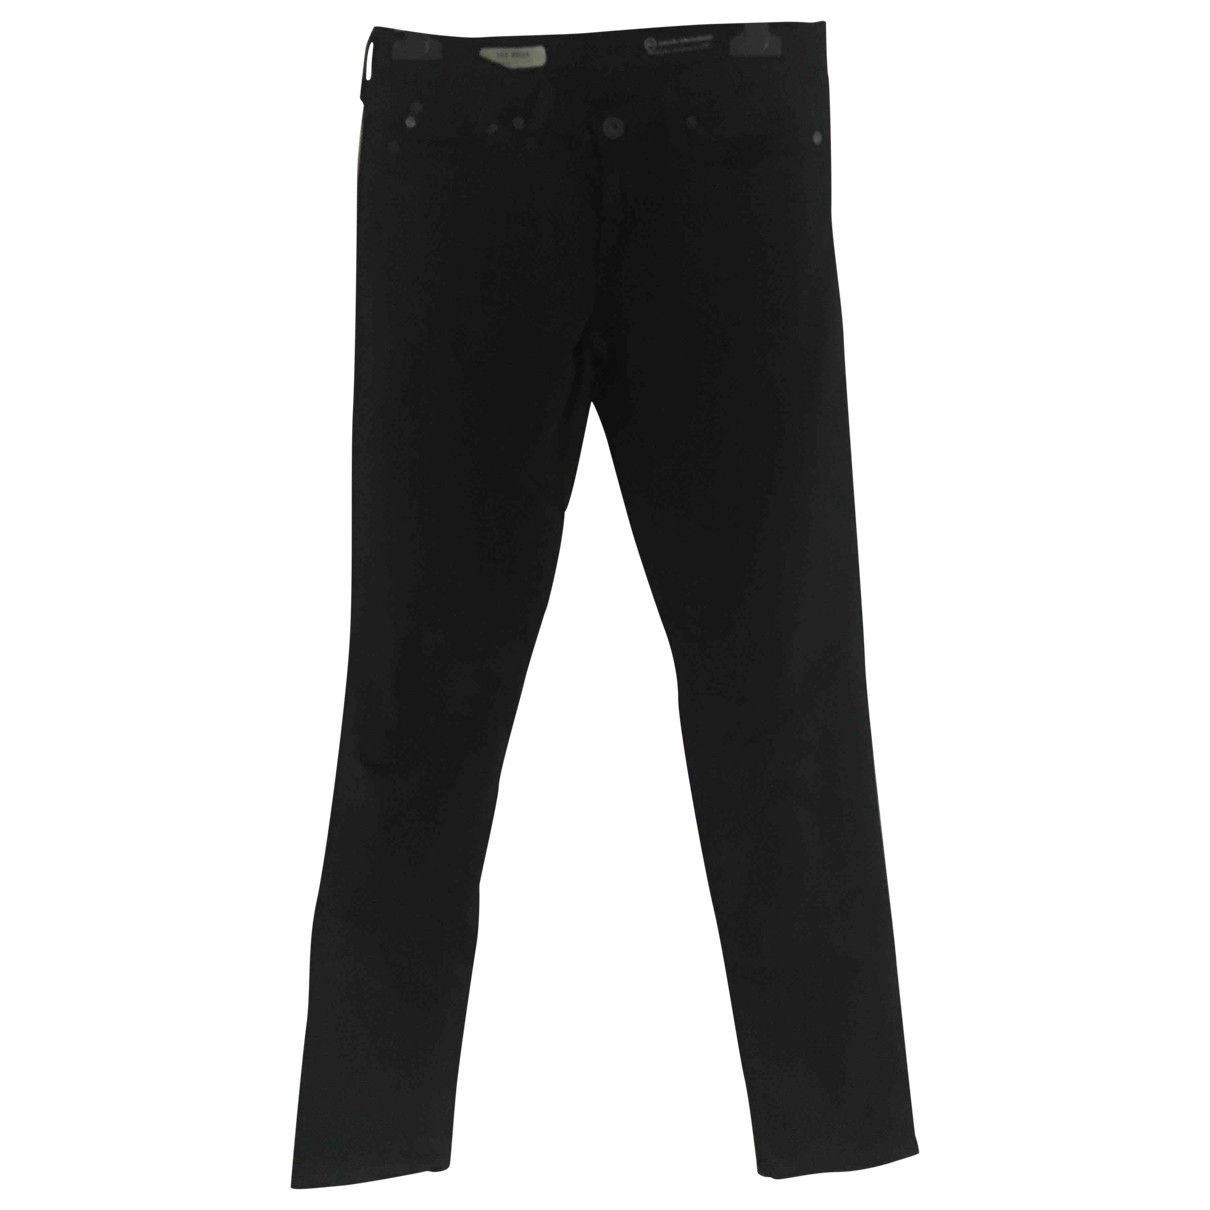 Adriano Goldschmied \N Black Cotton - elasthane Jeans for Women 25 US